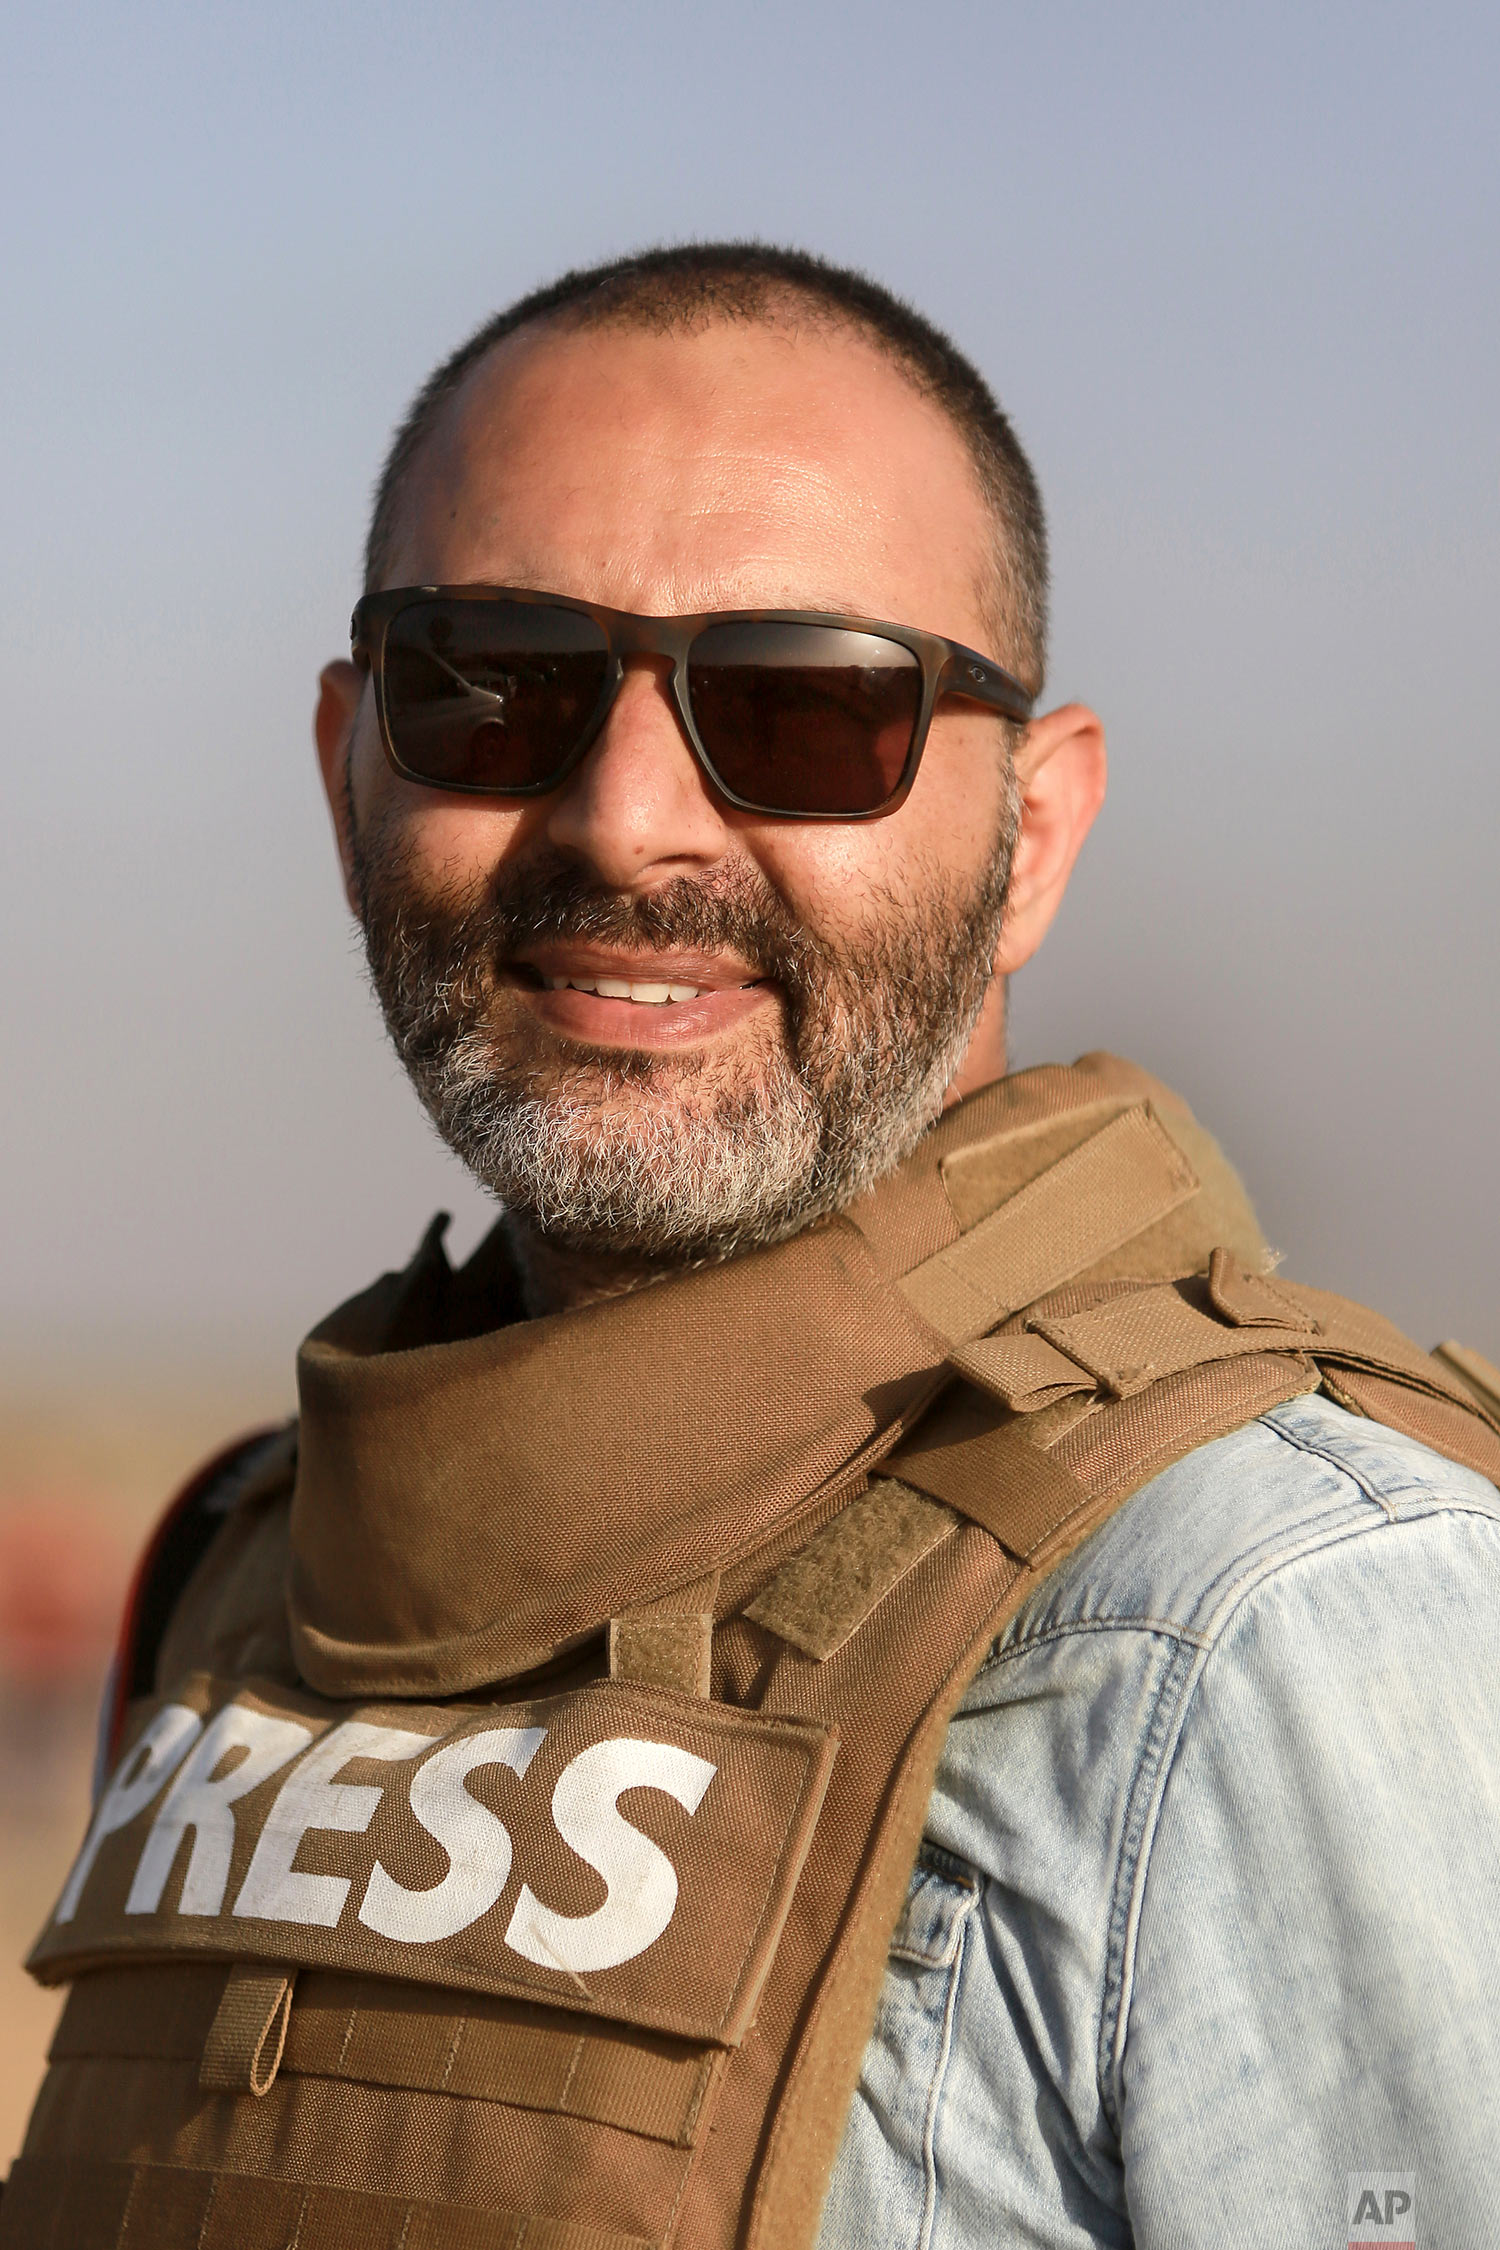 Khalil Hamra on assignment in Gaza